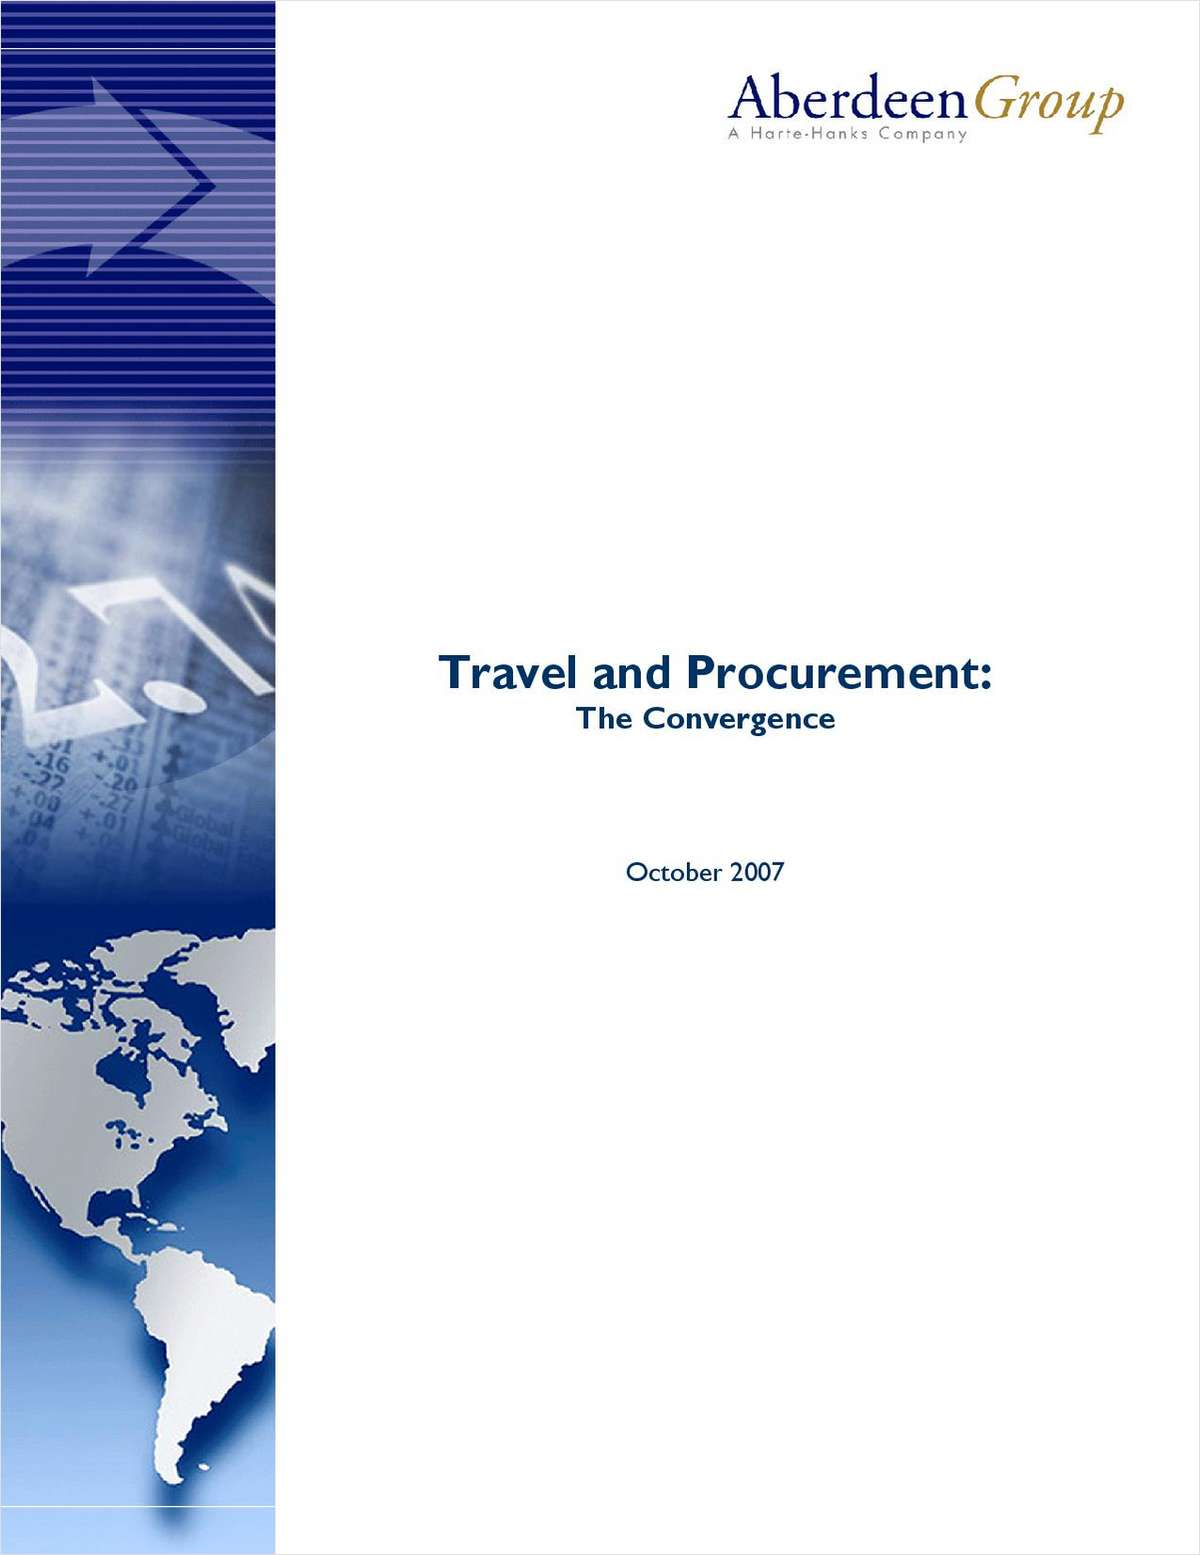 Travel and Procurement: The Convergence